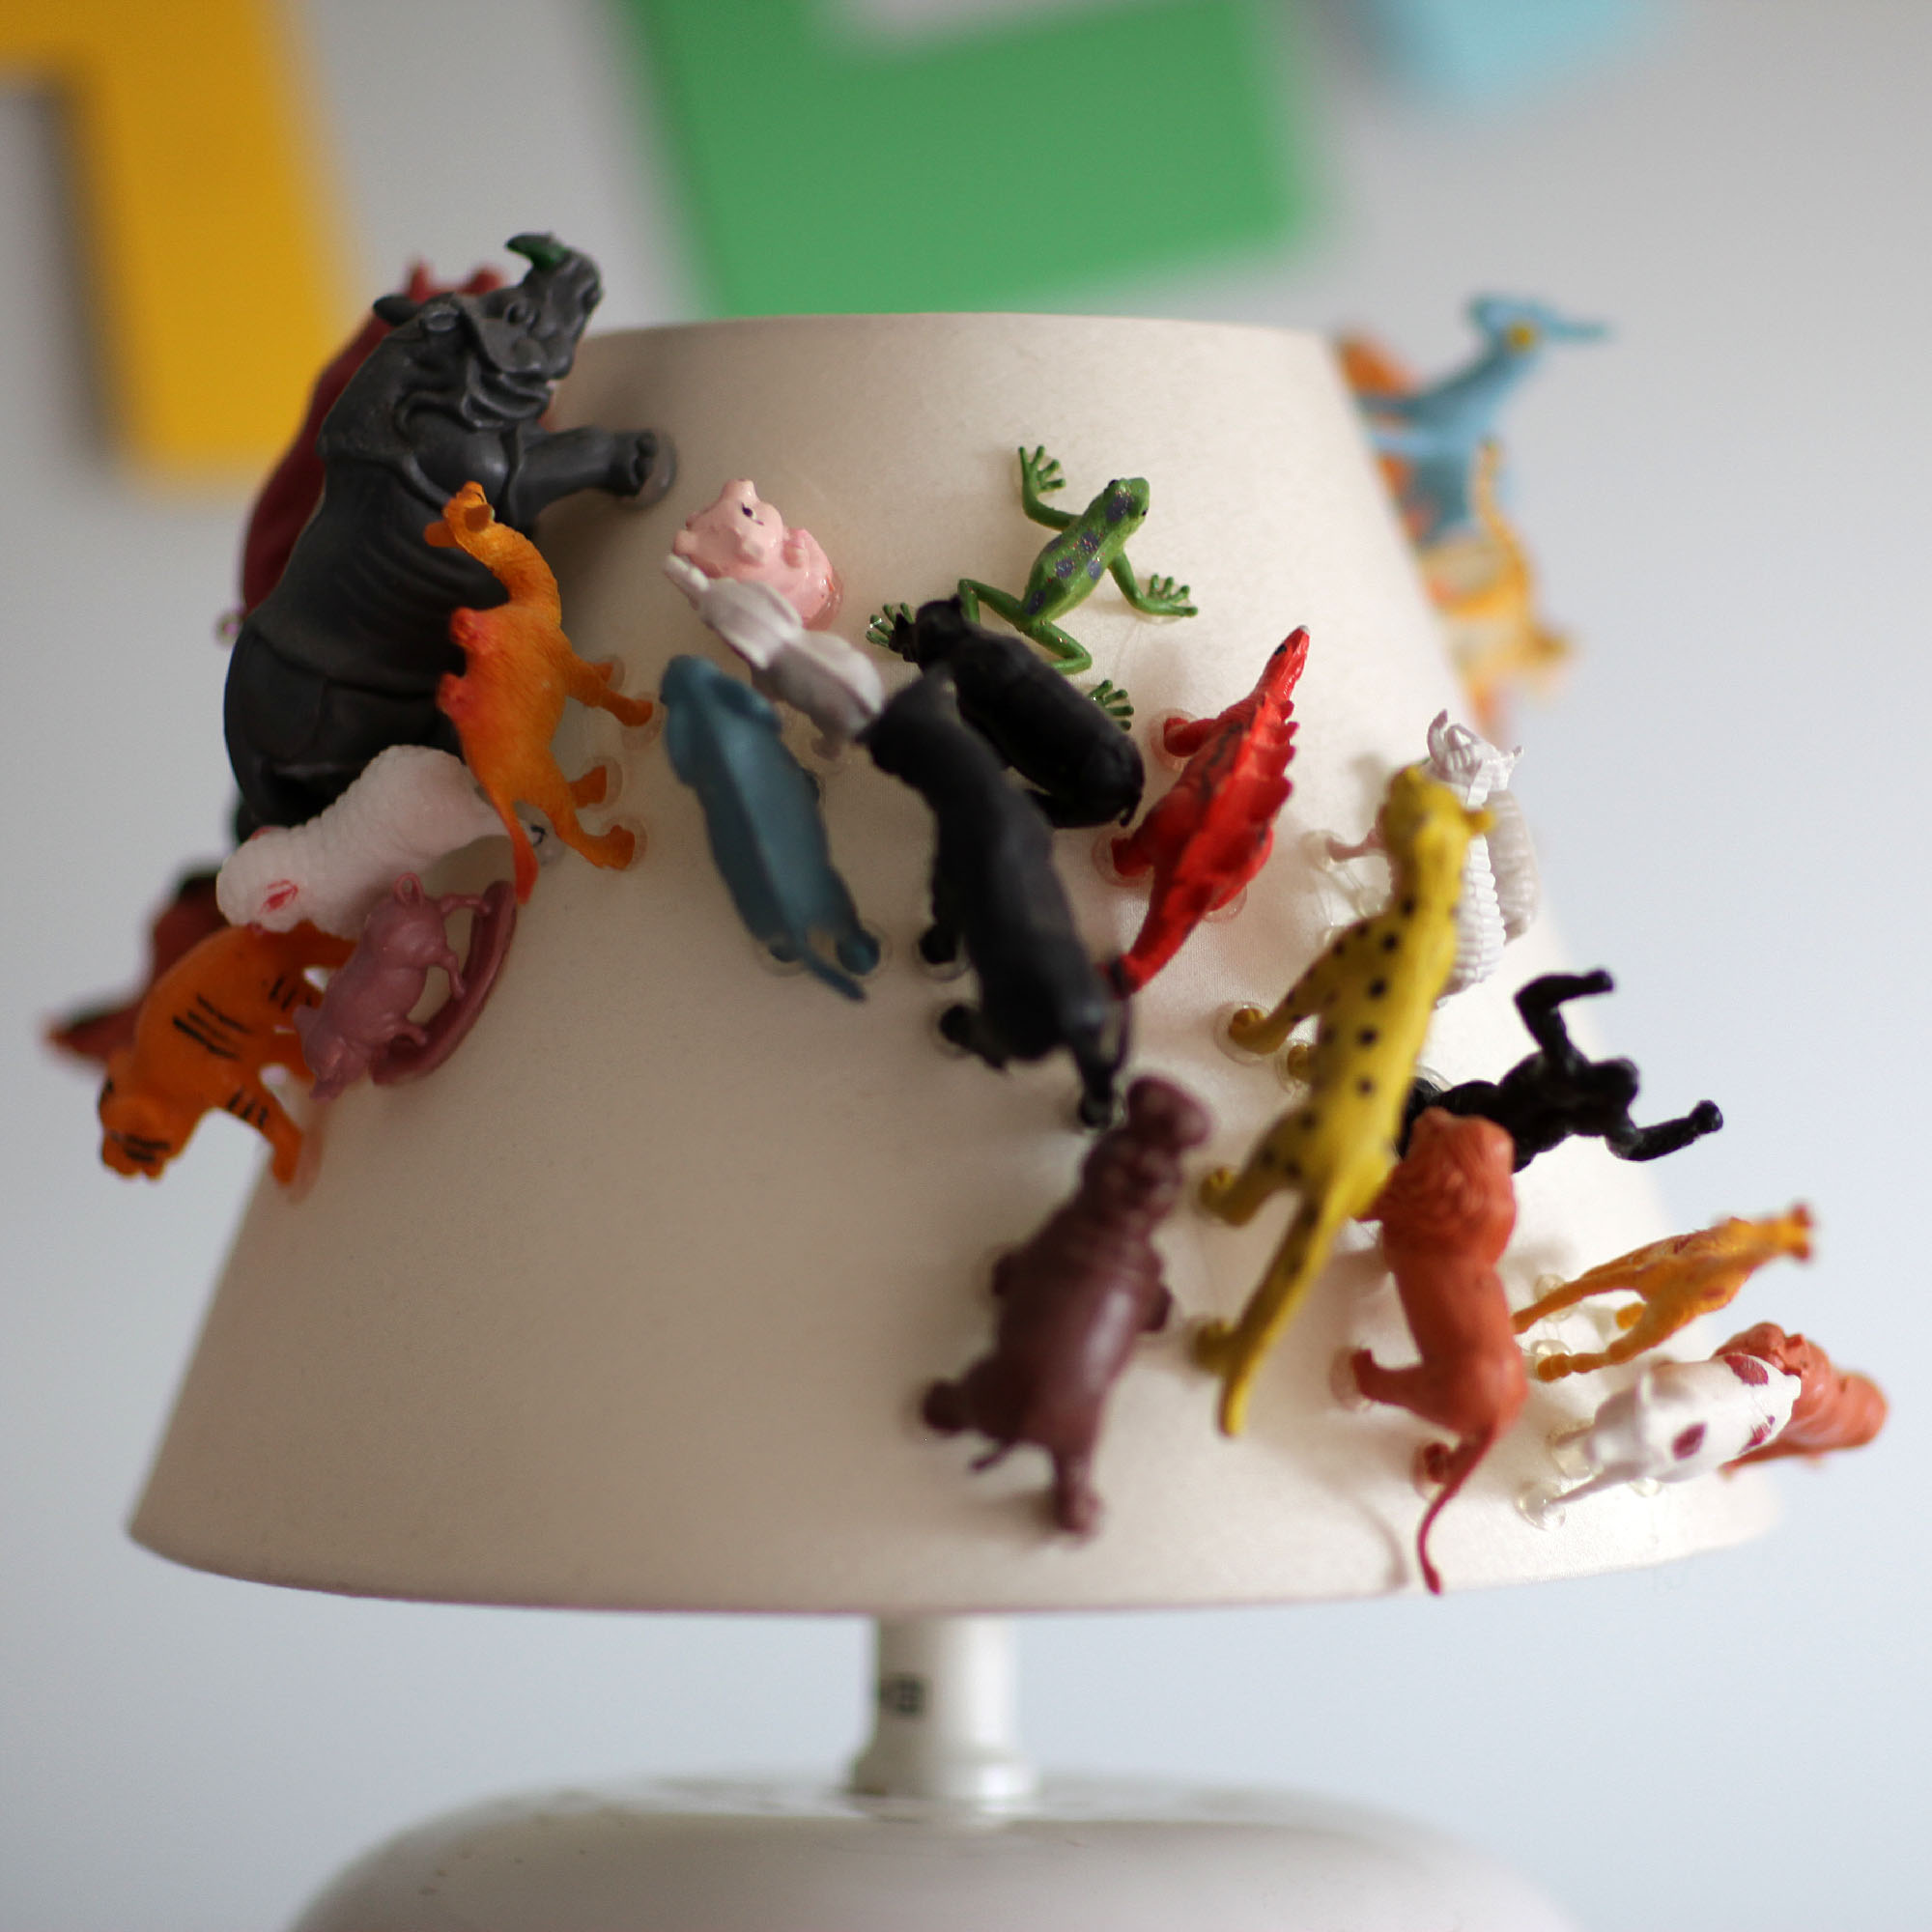 Another_Blog_DIY_Lamp_plasticanimal3.JPG